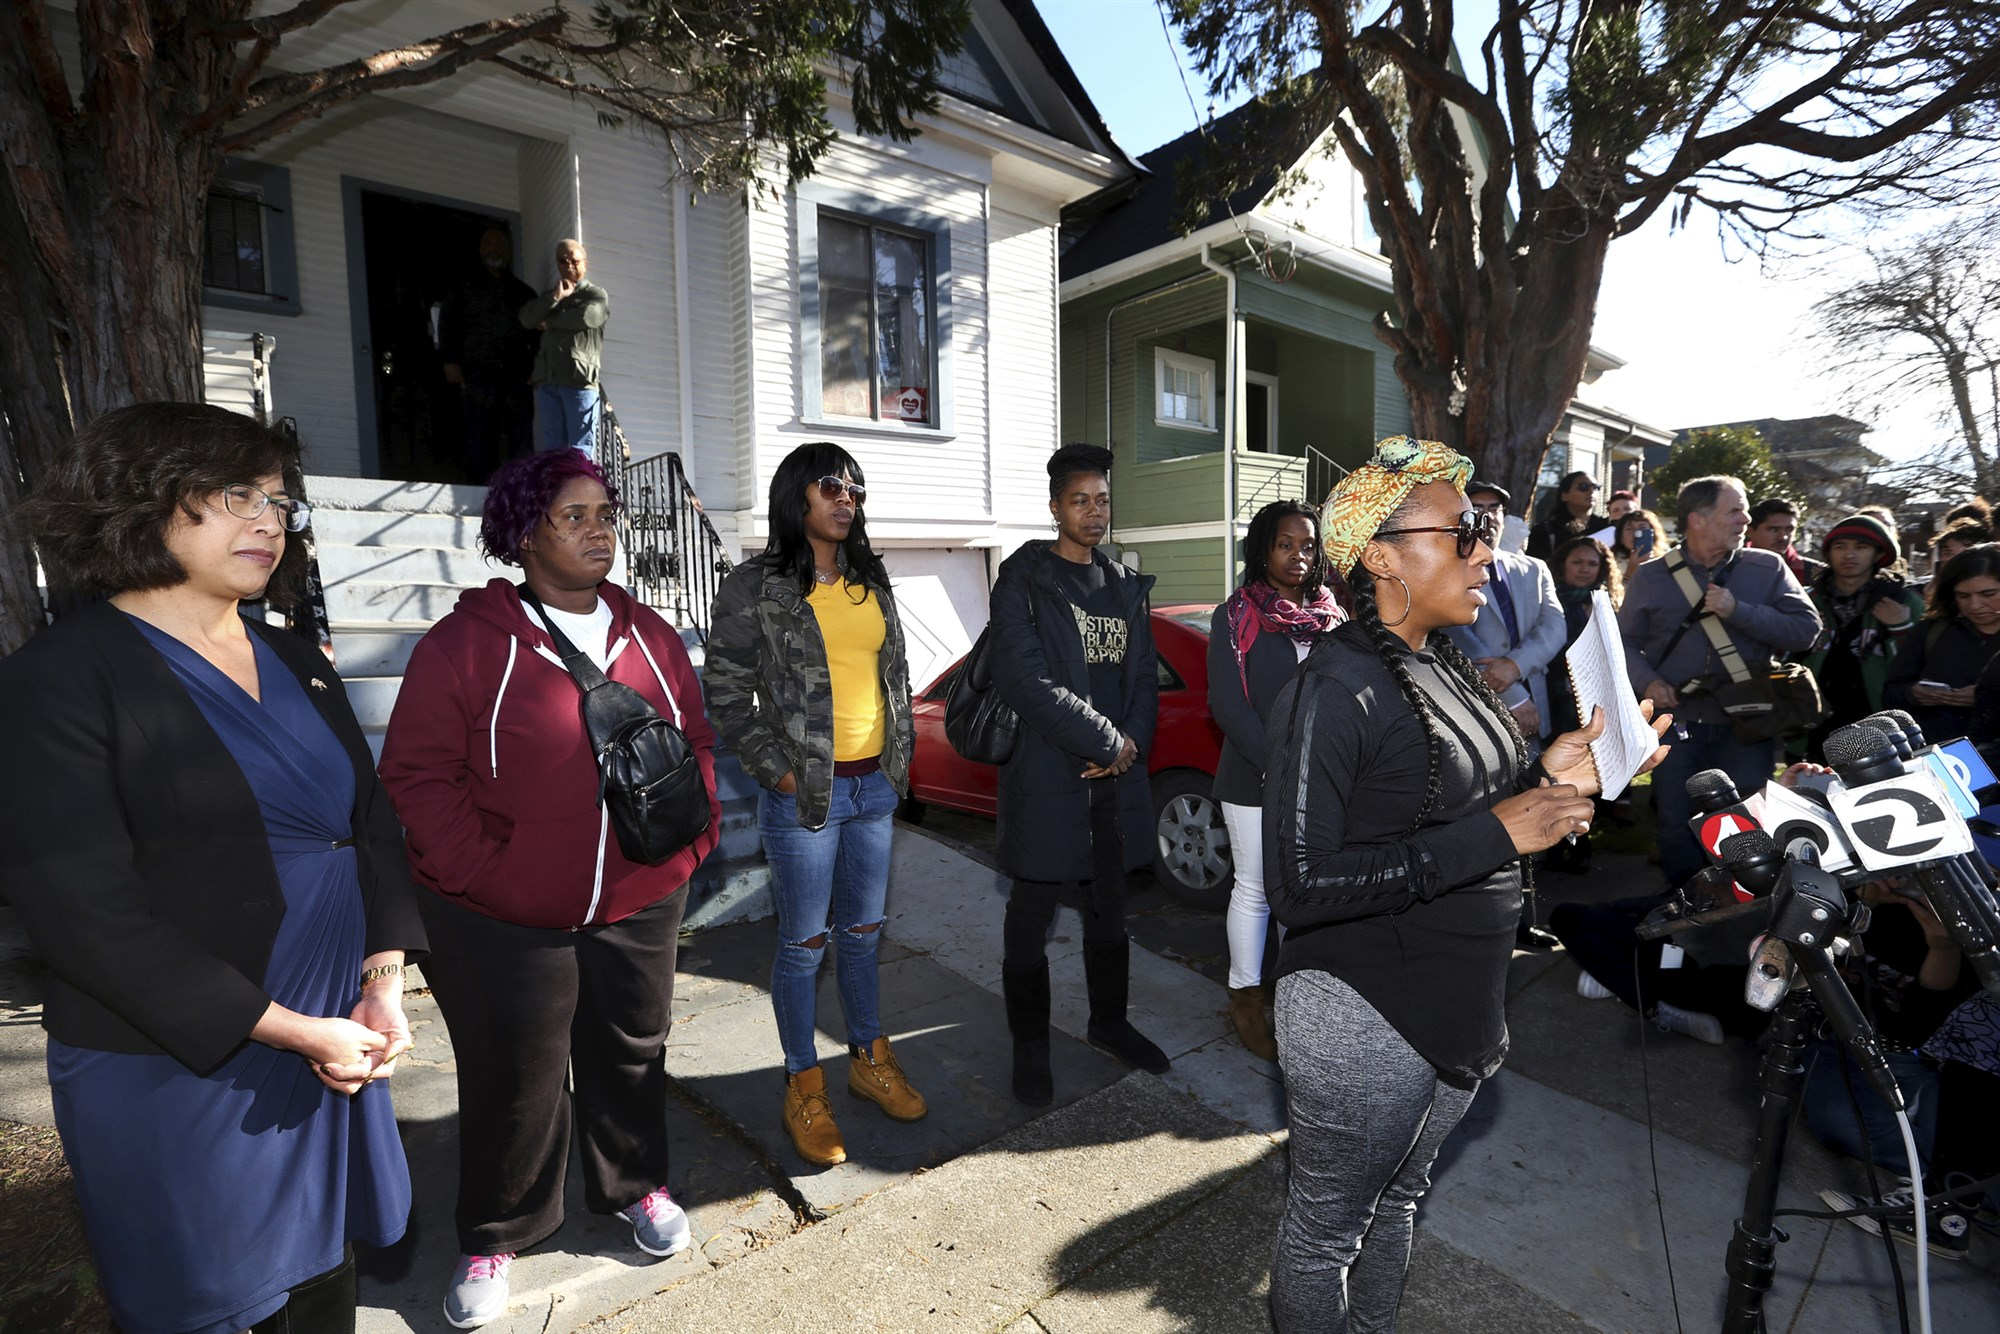 Homeless moms evicted after long fight to live in vacant California home